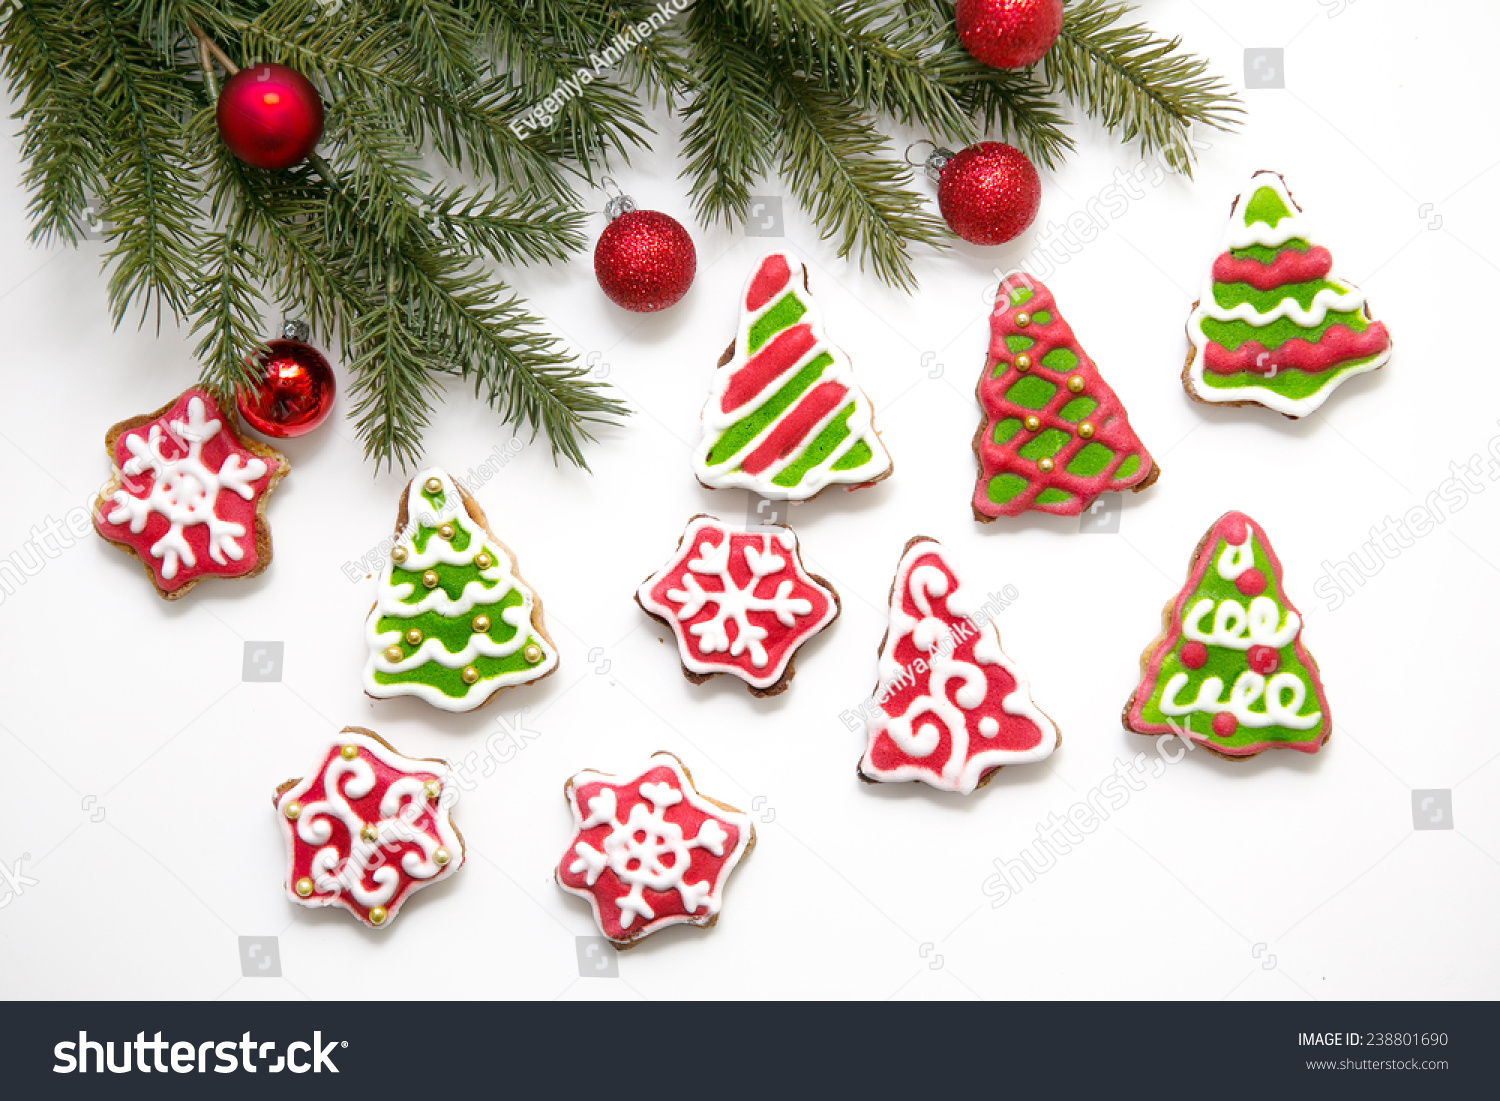 Fir Branch Christmas Cookies Red Balls Stock Photo (Royalty Free ...